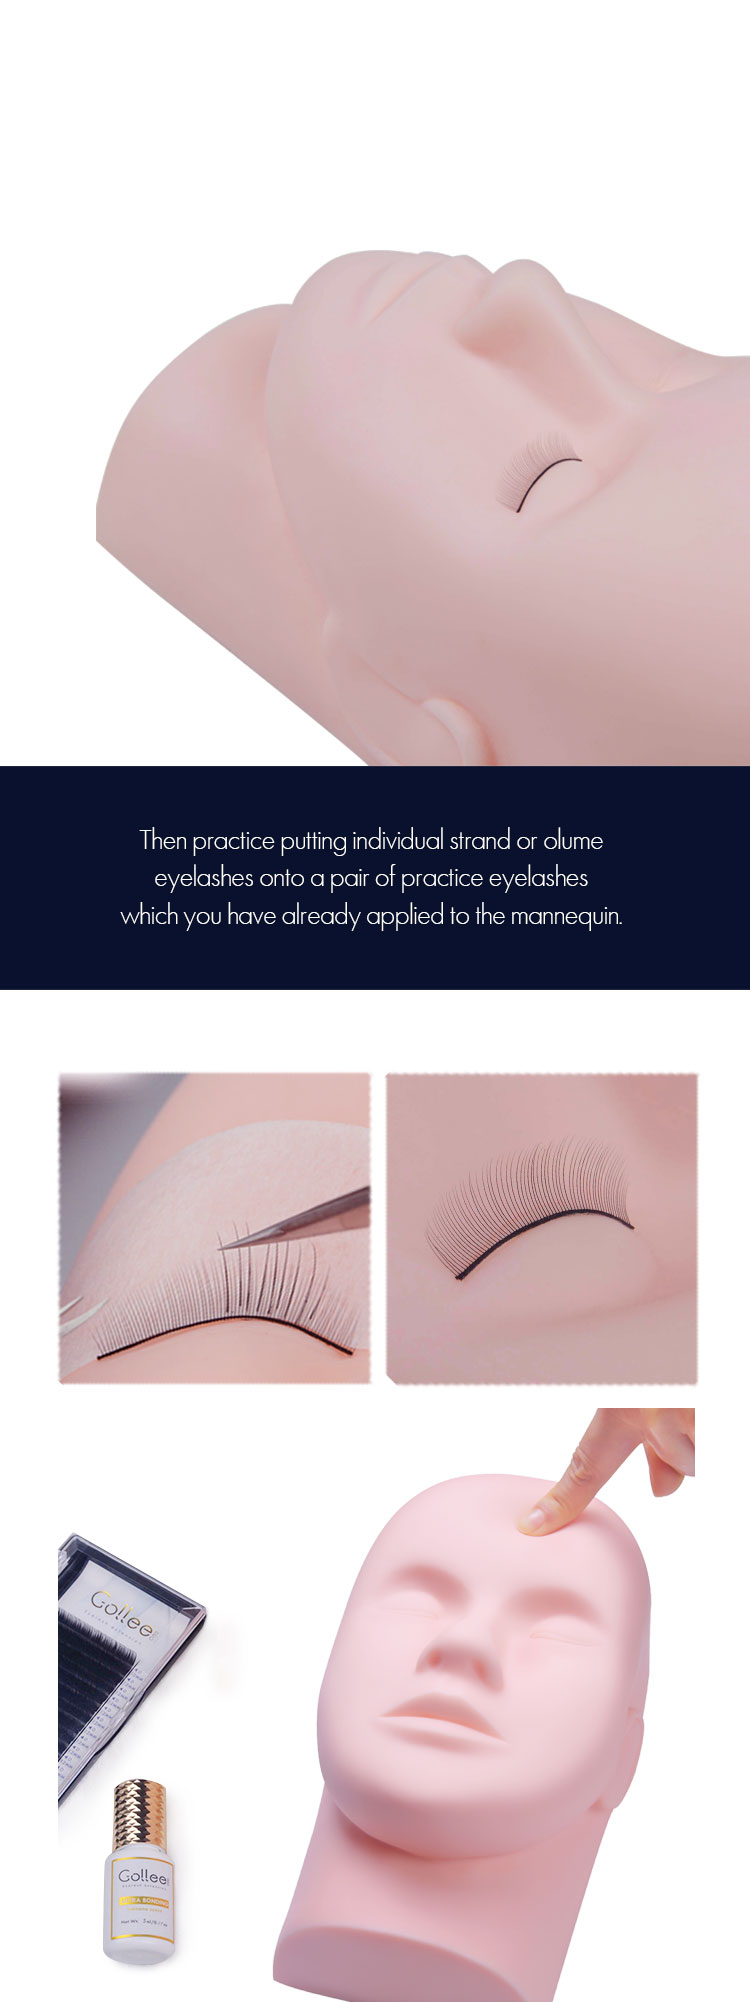 Gollee Wholesale Private Label Eyelash Mannequin Reusable Training ToolsHead Eyelash extension Head Eyelash Mannequin